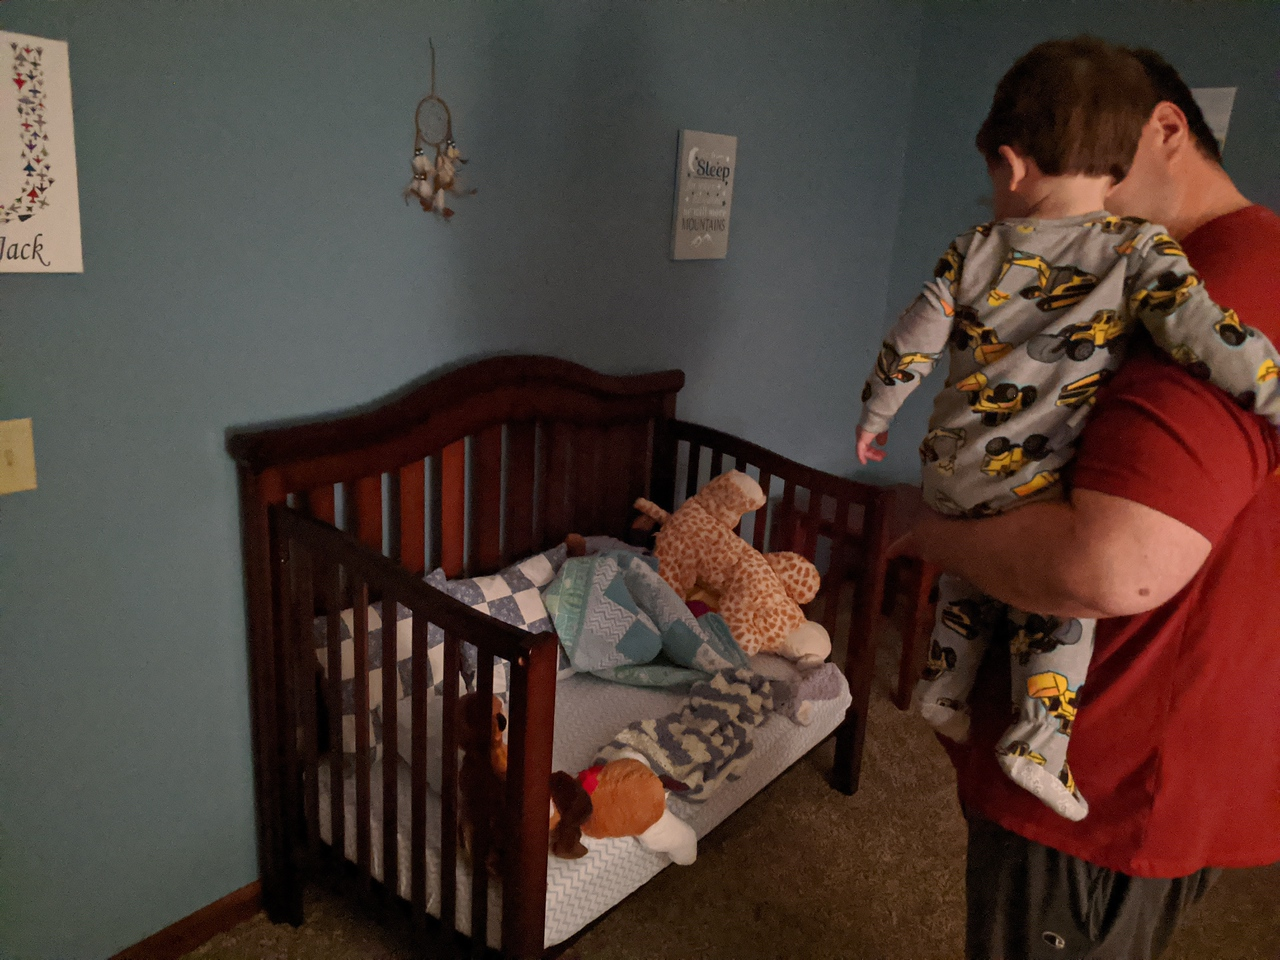 Sunday night activities included taking the front rail off Jack's bed so he wouldn't keep climbing out and potentially get hurt (this did not go over well)